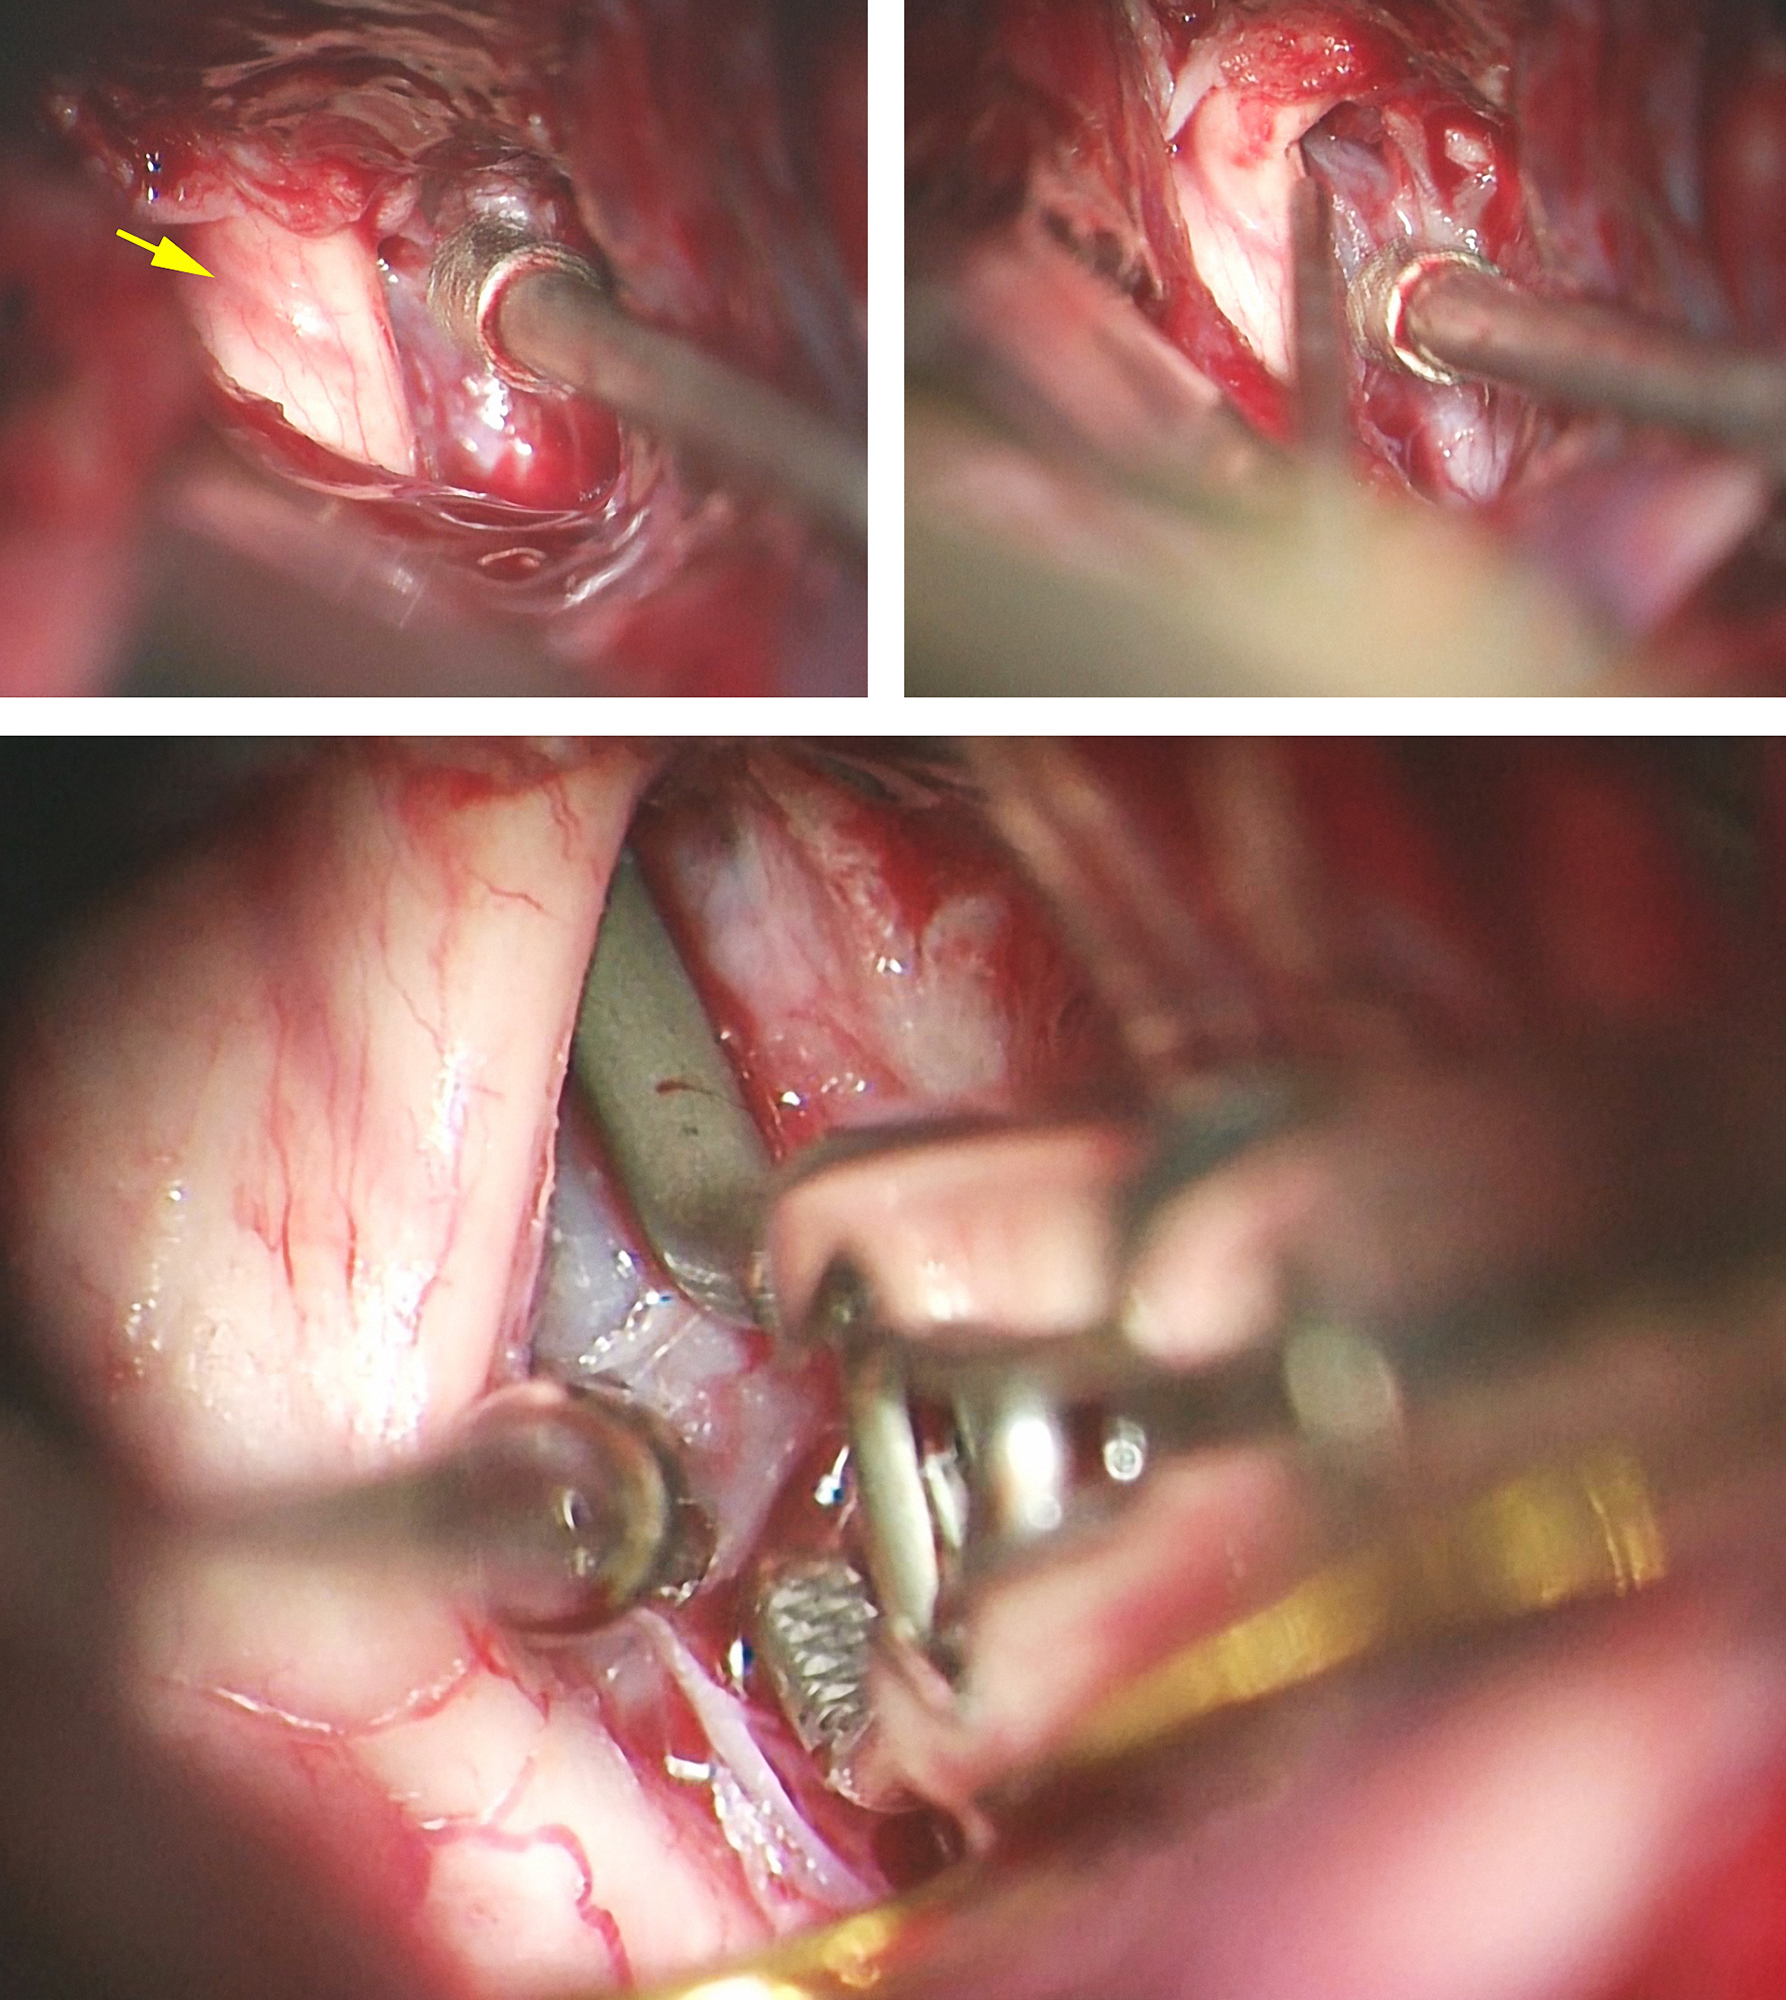 Figure 7: A large right-sided ophthalmic artery aneurysm (see Figure 1) was clip ligated using the suction-decompression technique. Note the discoloration on the optic nerve from the mass effect of the aneurysm (left upper image, yellow arrow) after the falciform ligament was incised. The suction-decompression technique provided the much needed deflation of the aneurysm so I could identify the anterior neck (right upper image) and apply the permanent clip (lower image).